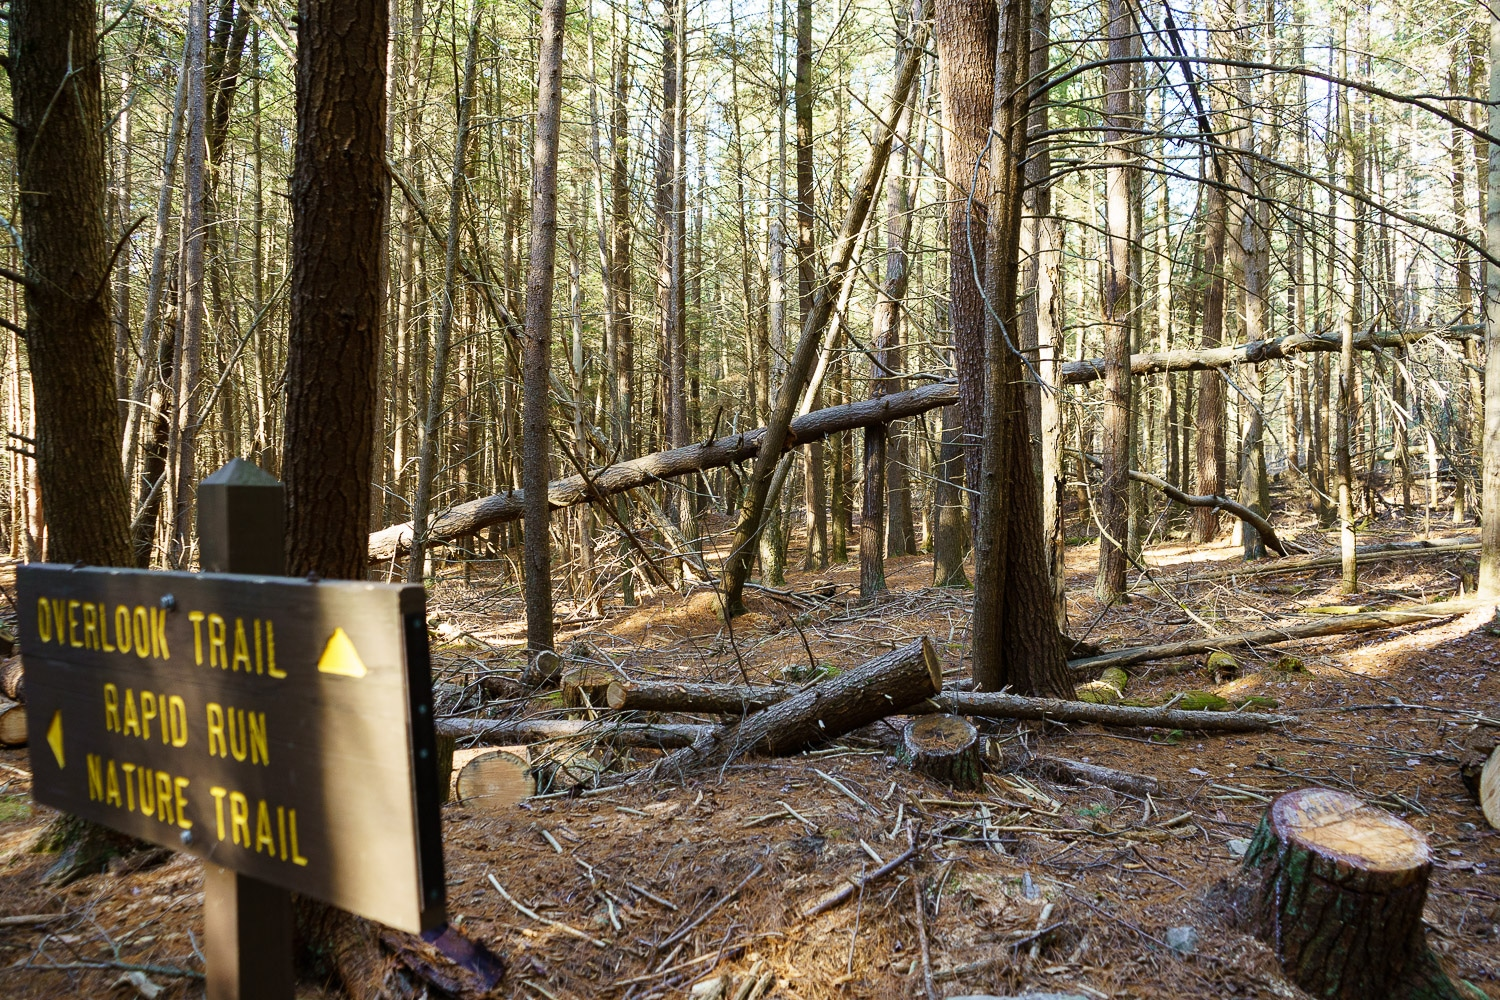 A fallen tree in the pine forest.